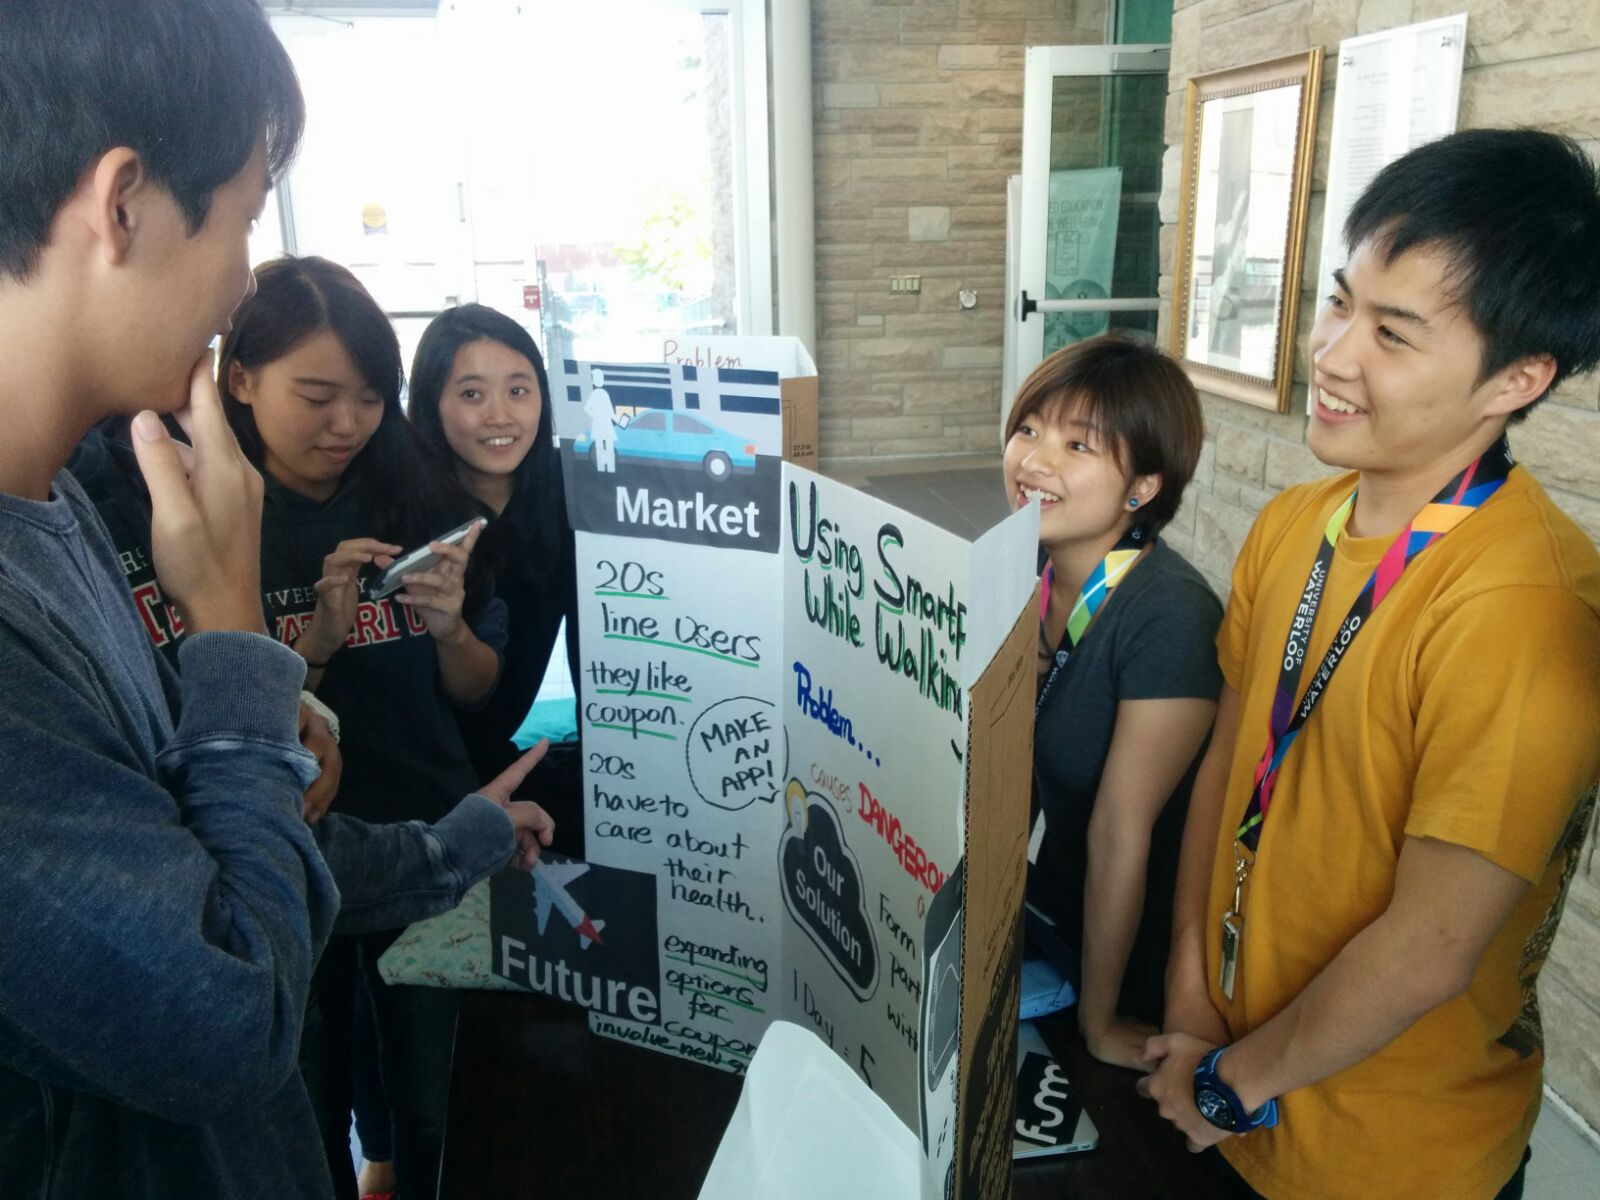 Students showcase their business ideas at the RIO business leadership showcase